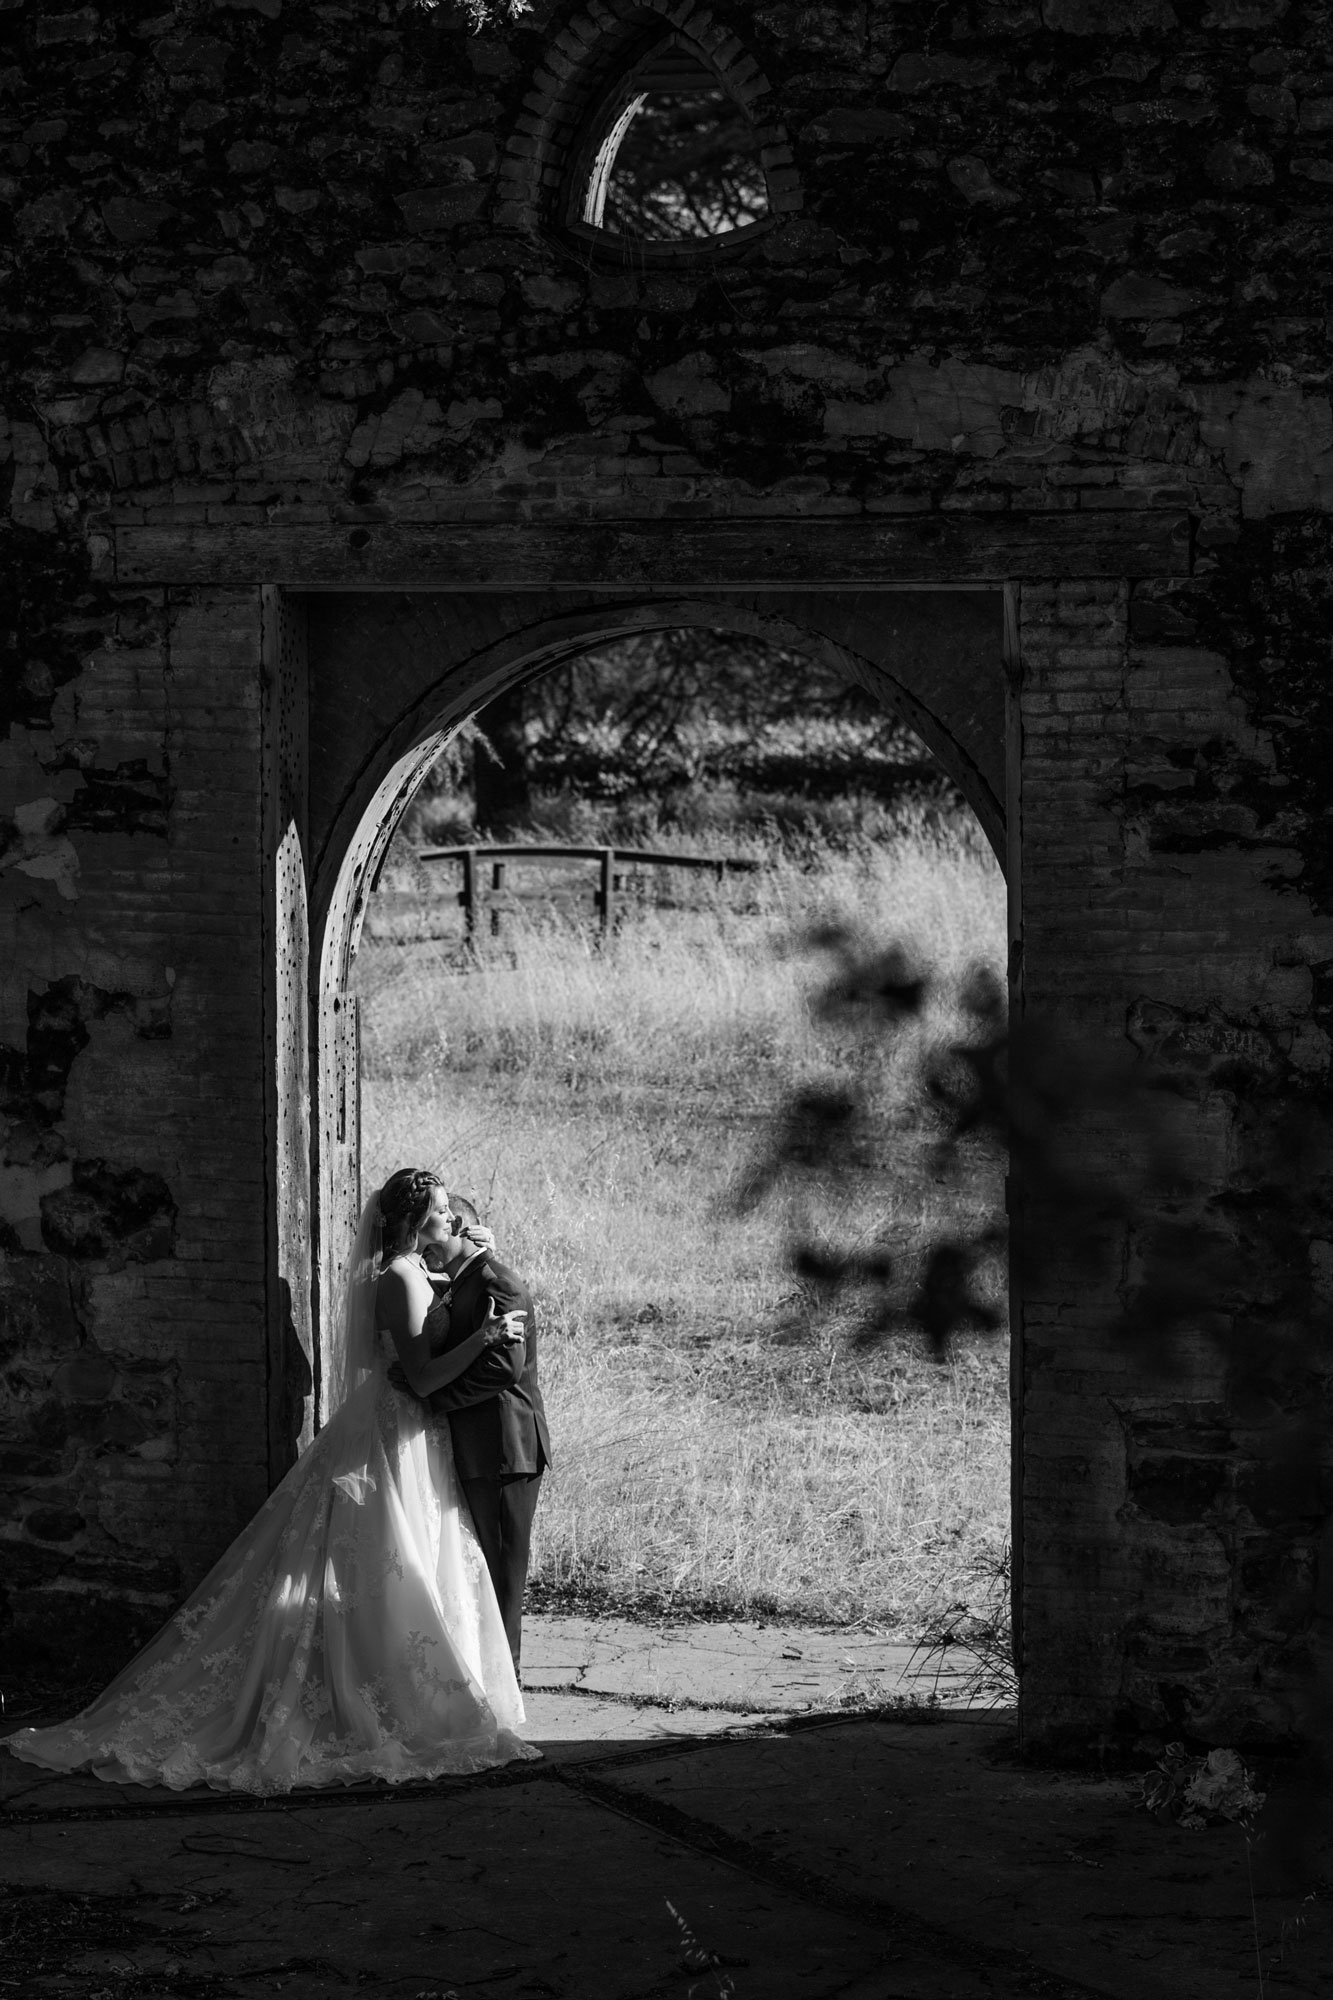 Black and white photo of bride and groom standing in an abandon doorway